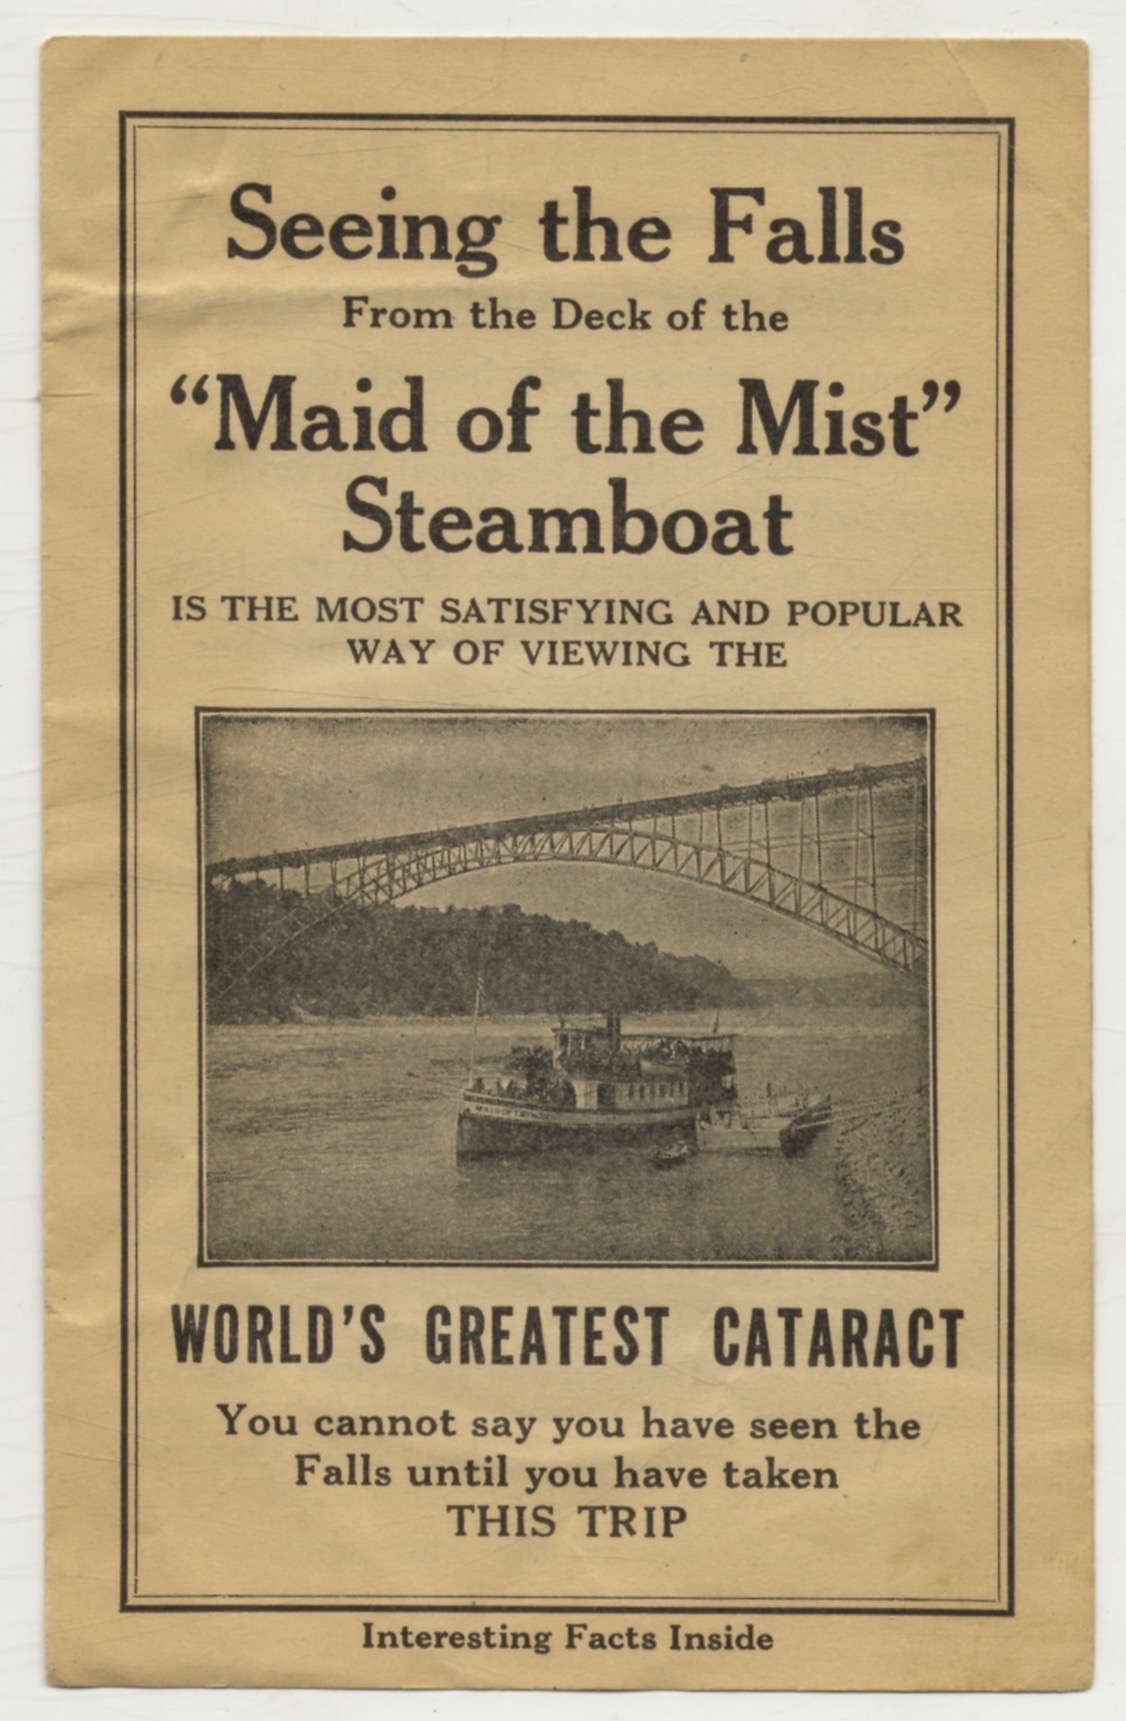 Maid Of The Mist Tour Of Niagara Falls [Advertisement]